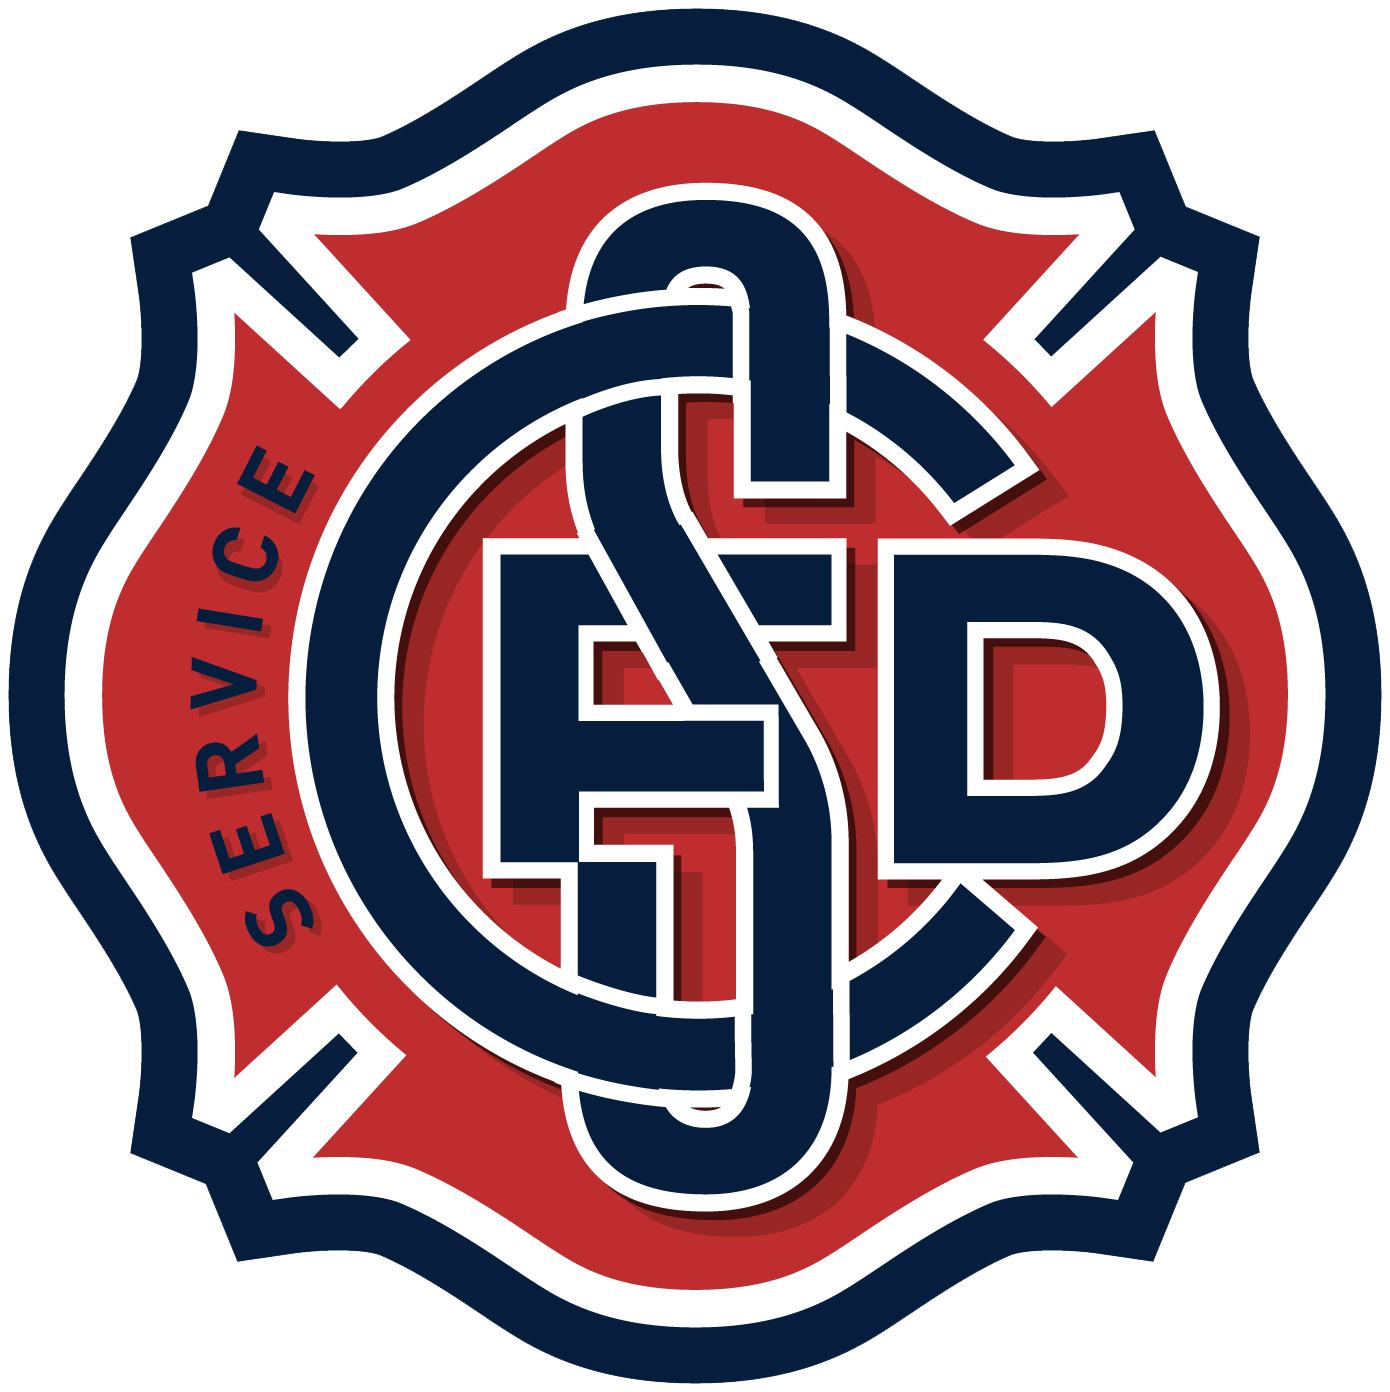 Fire house clipart banner free download Silver Creek Fire Department - Home banner free download